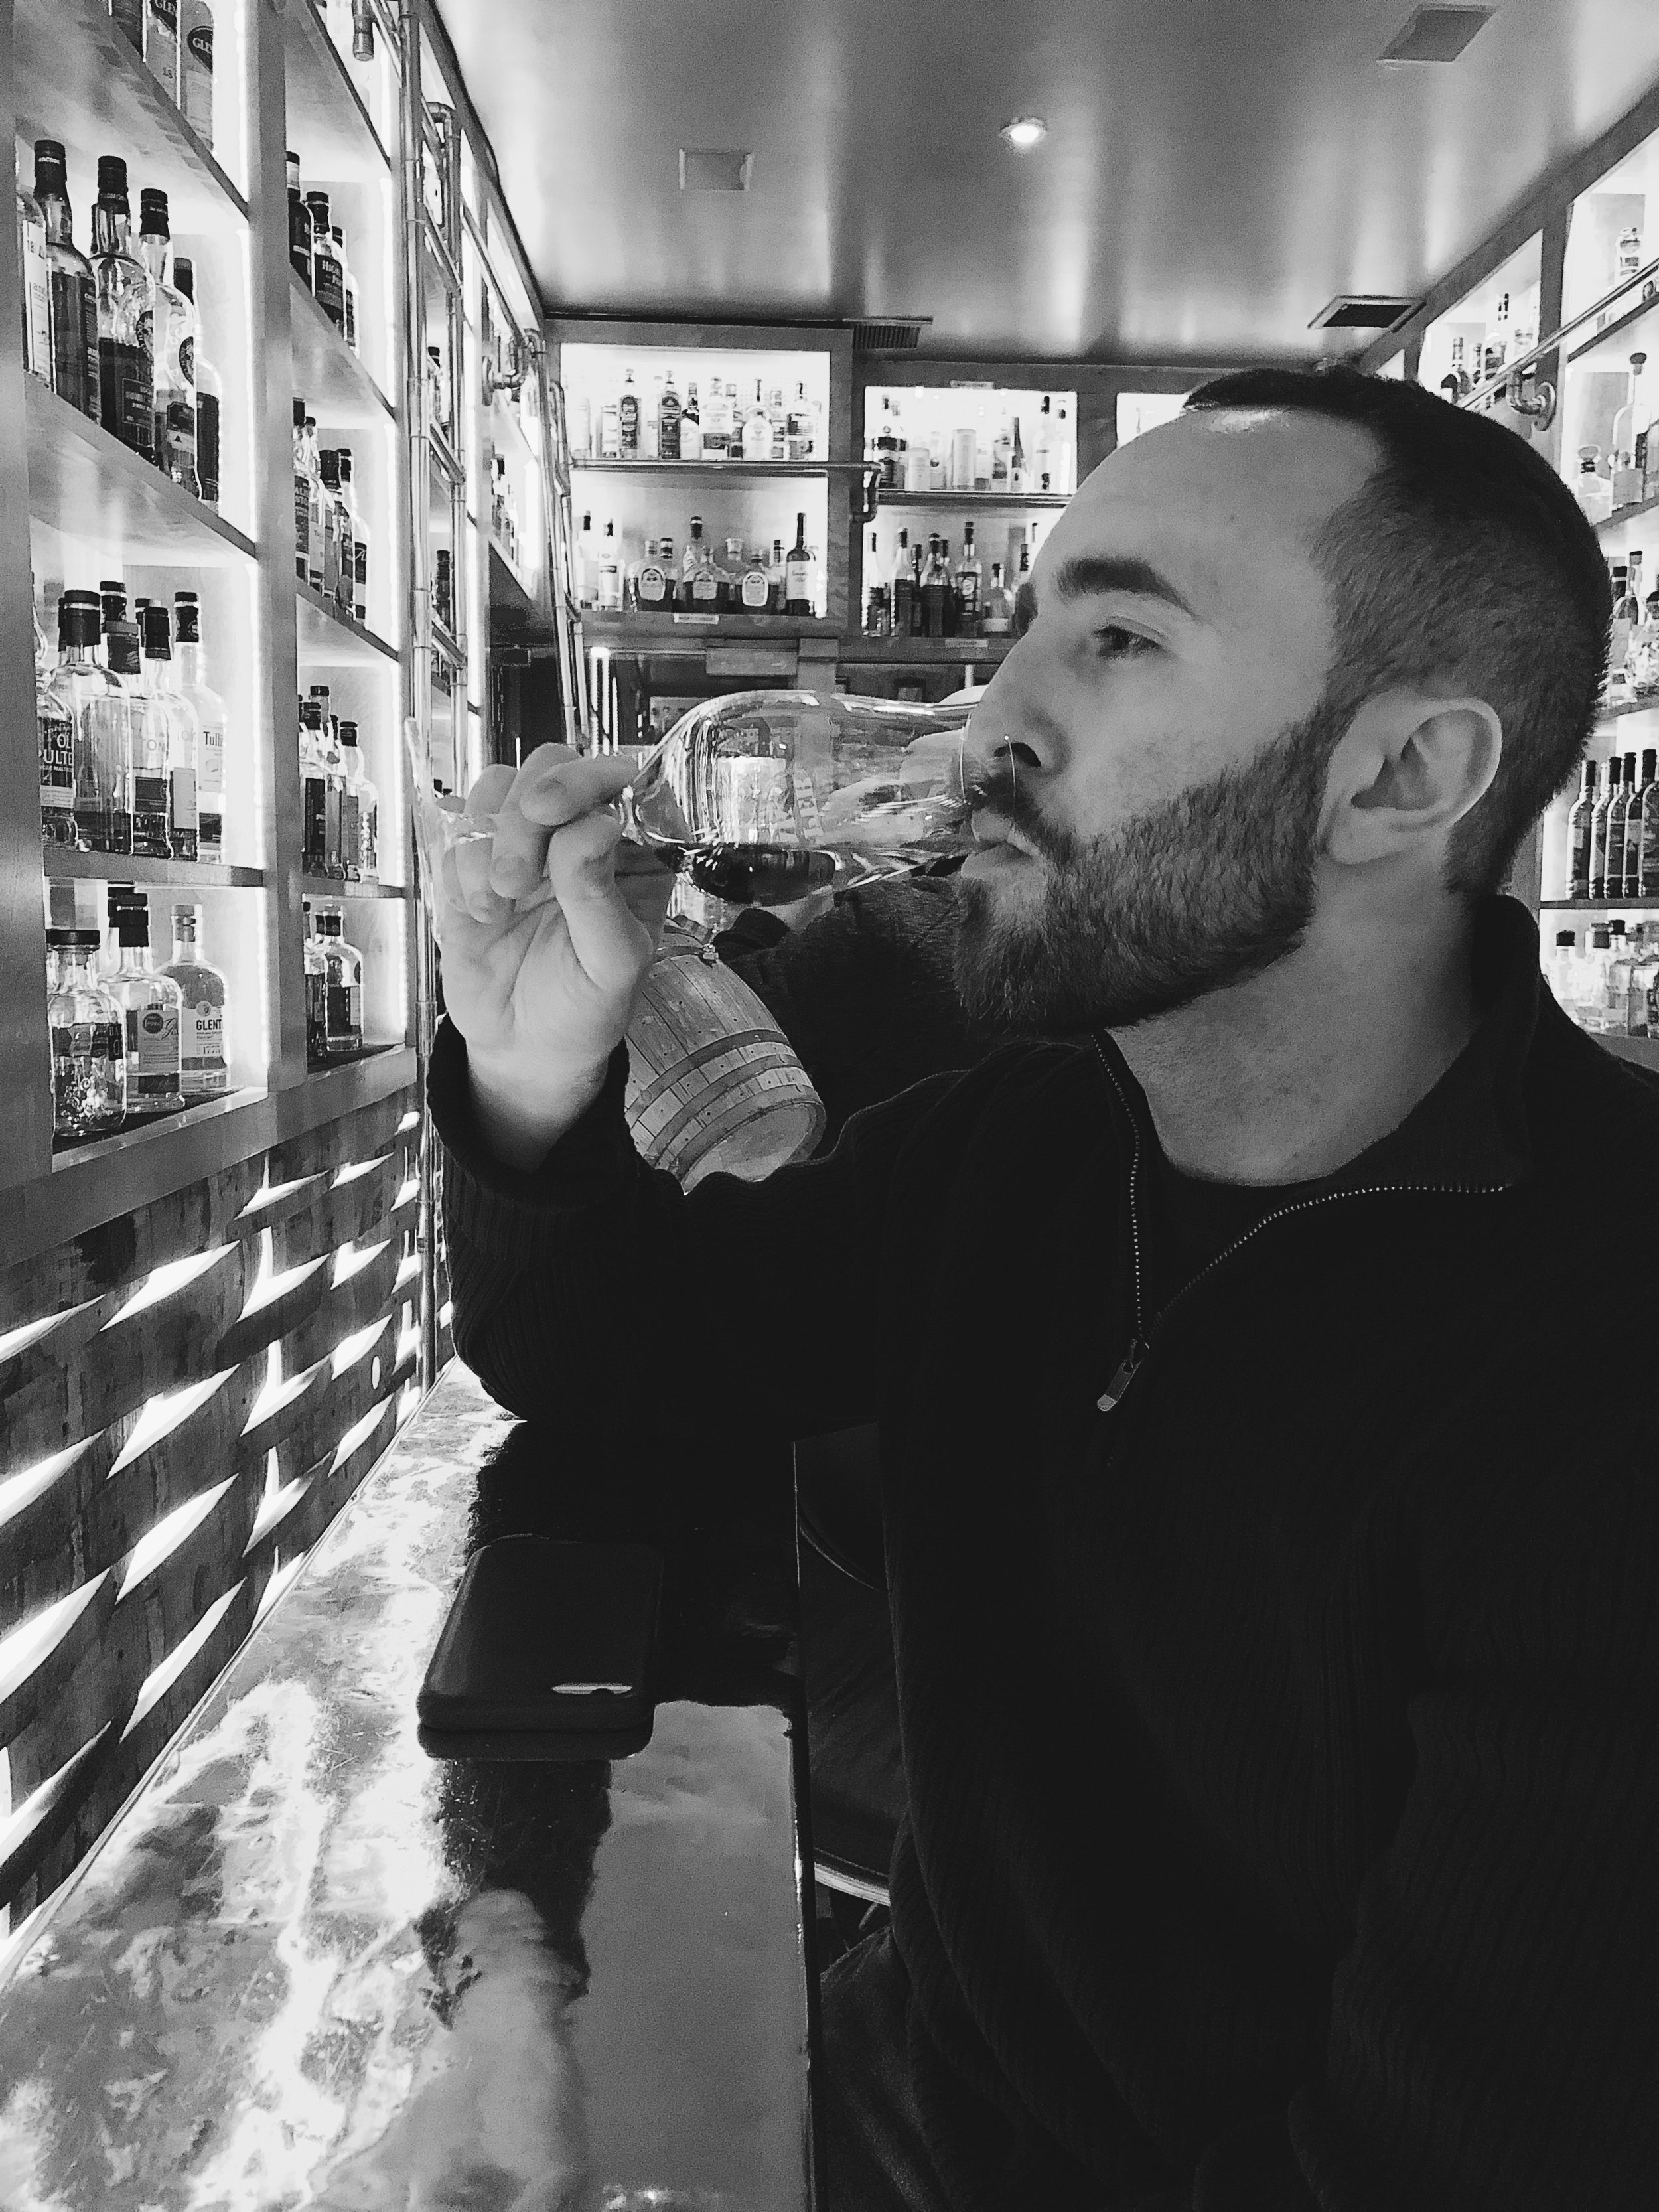 MIKE SMOLANOFF - CREATOR OF THE UNKNOWNMARKETER + WHISKEY CONNOISSEUR